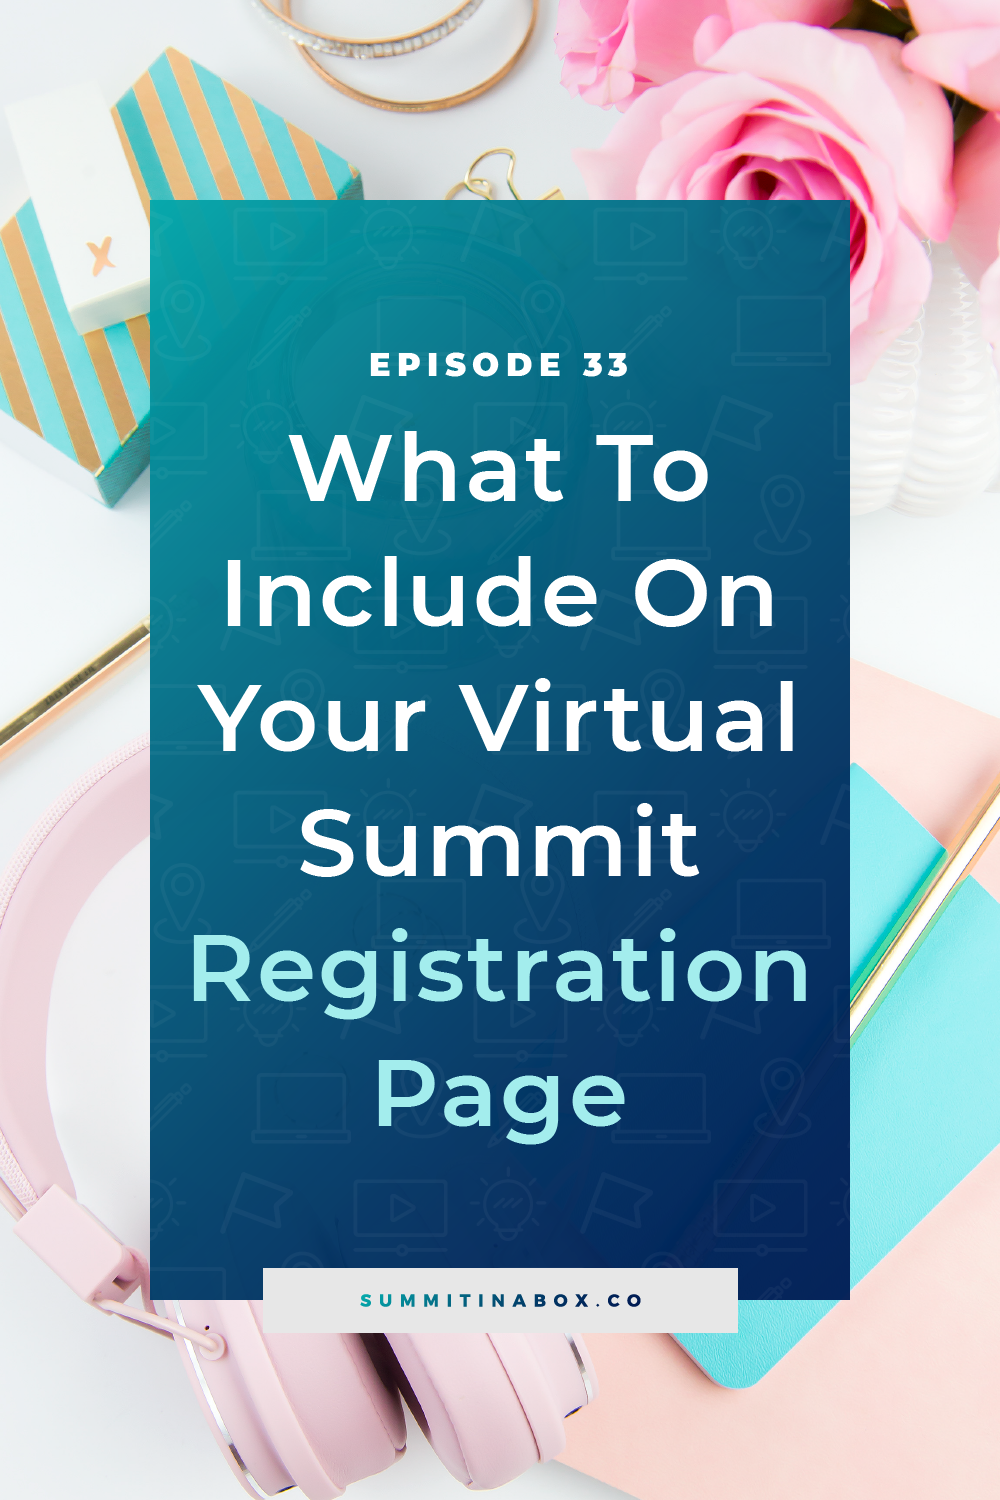 Want a virtual summit registration page that converts? Of course, you do! Here are 19 pieces to include on a high-converting summit registration page.